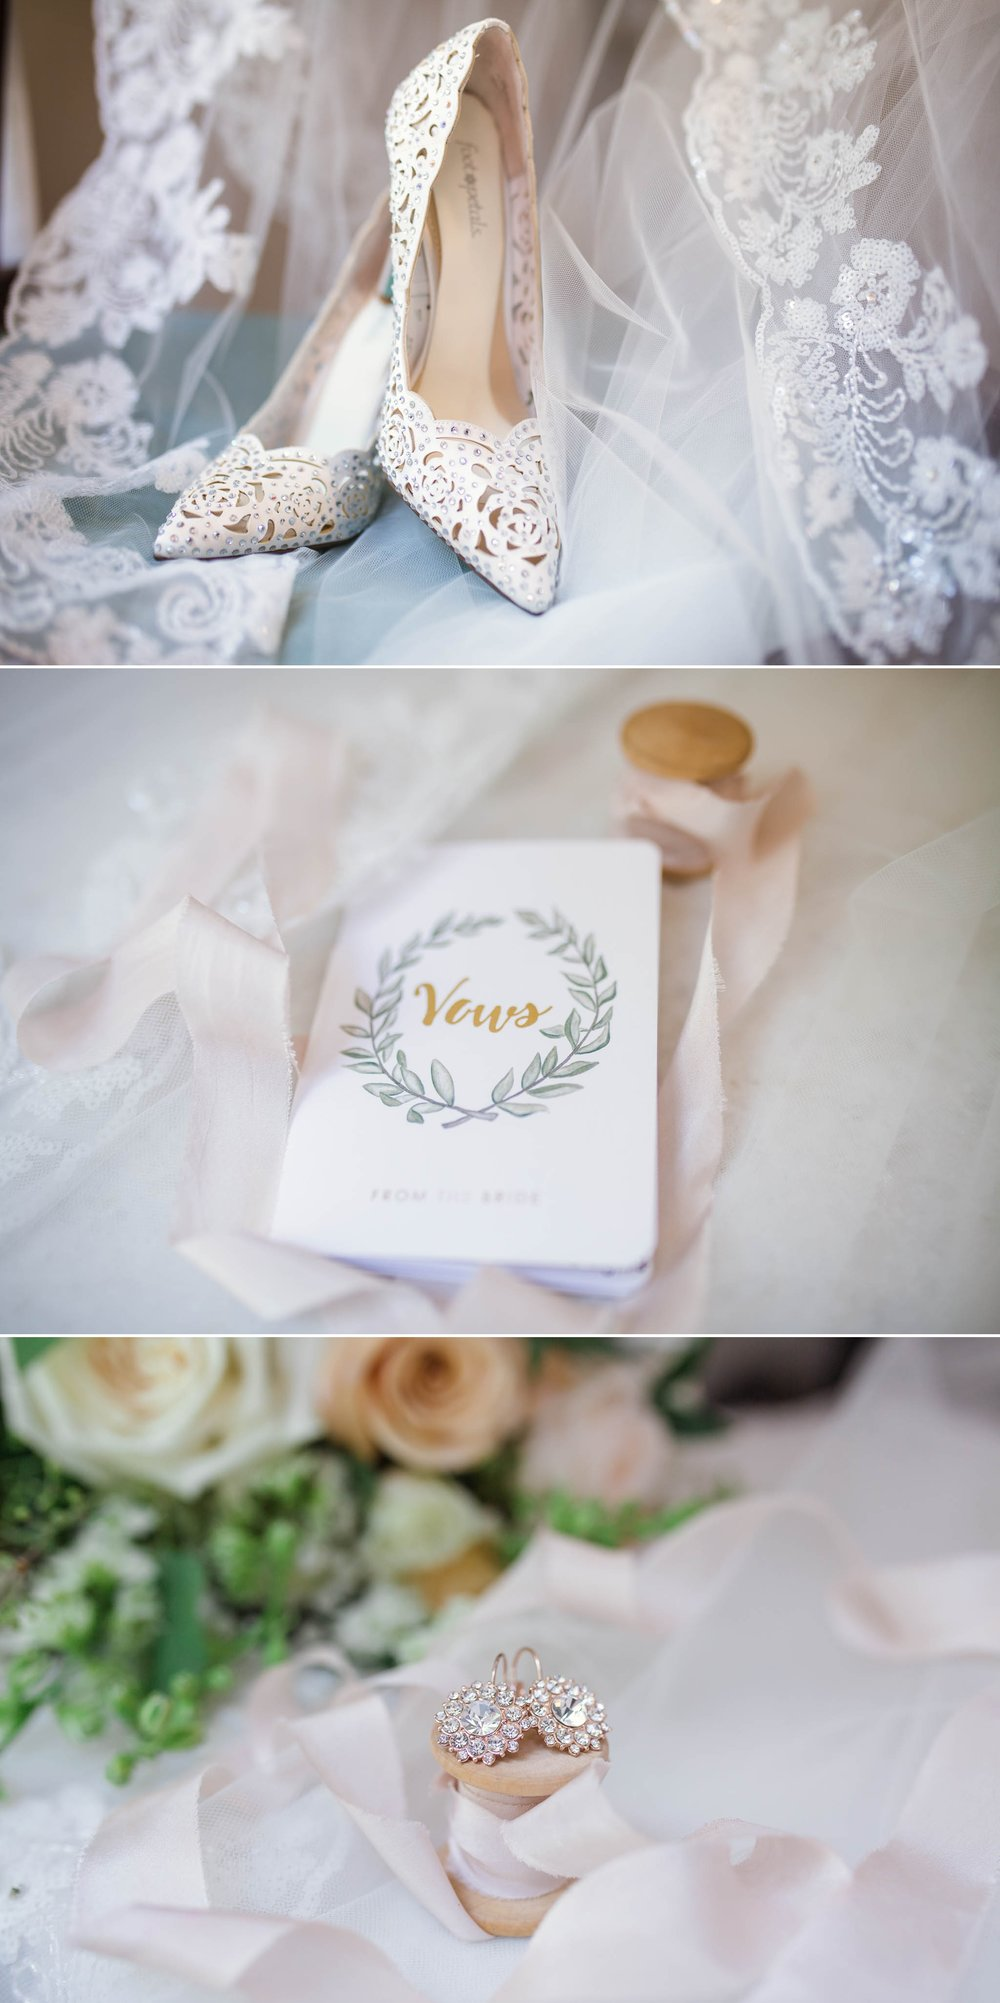 Details of the Bride, shoes, vows and ear rings - Yansi + Eddie - Wedding at Cape Fear Botanical Garden - Fayetteville North Carolina Photographer